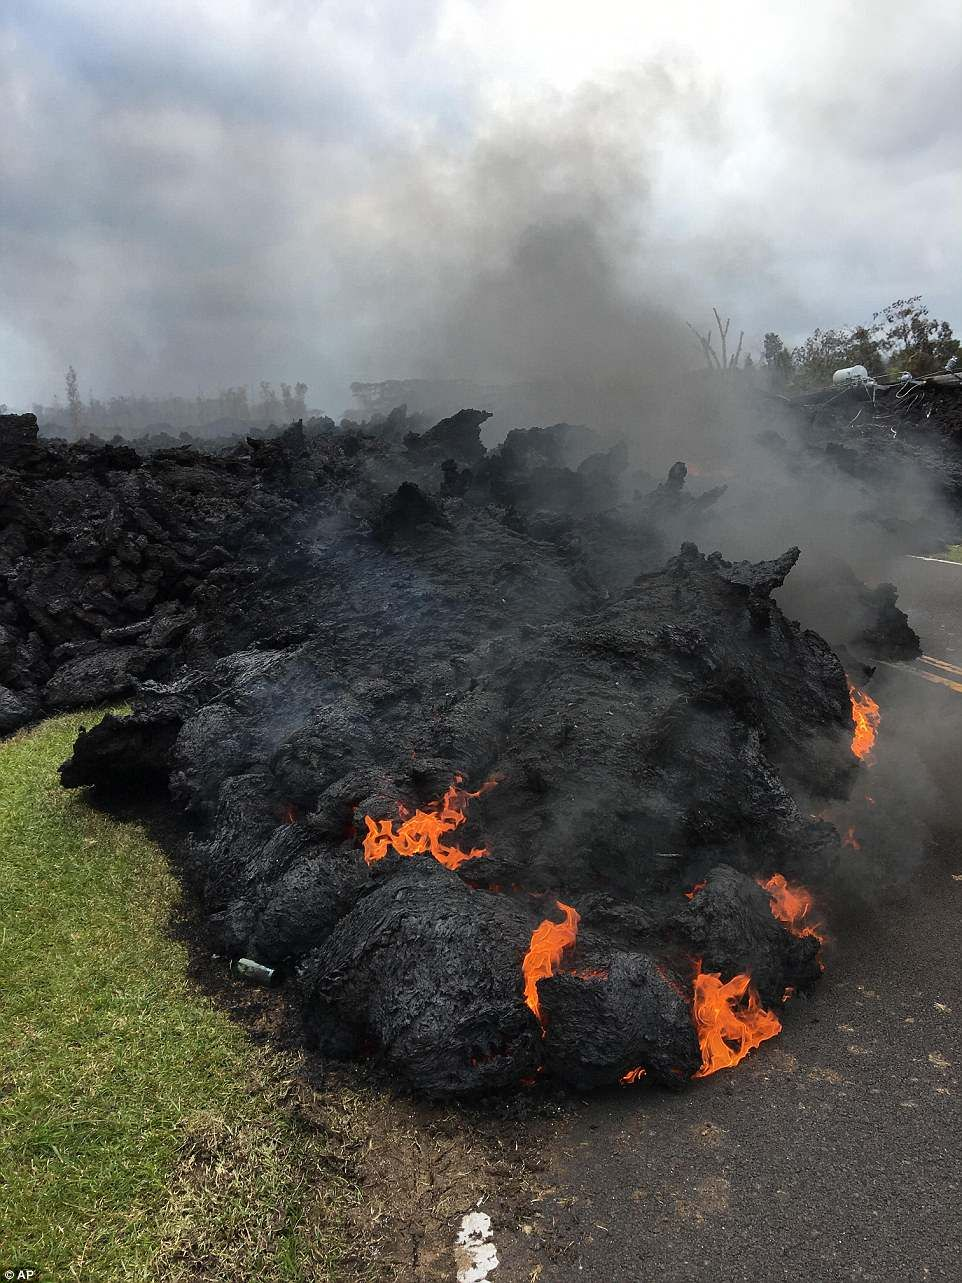 Two new vents open up on erupting Kilauea volcano spewing